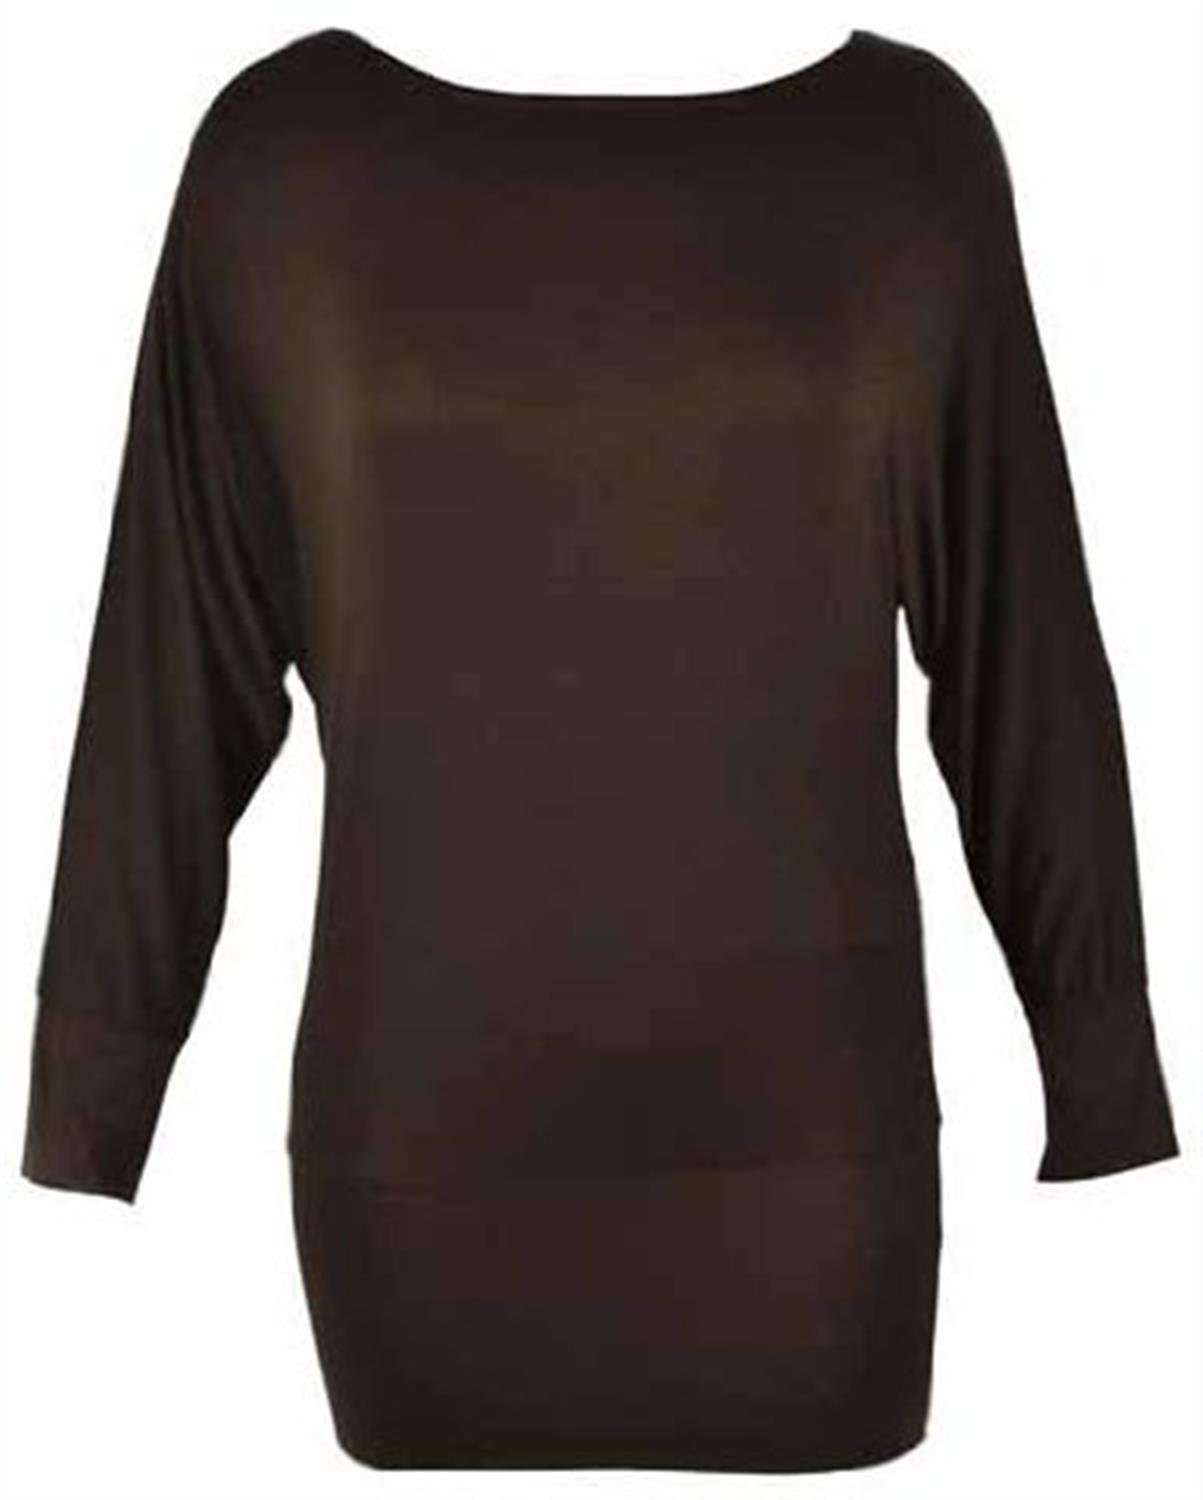 162ae28317f0 Chocolate Pickle ® NEW LADIES PLAIN BATWING LONG SLEEVE SLOUCH DRESS TOP  8-16  Amazon.co.uk  Clothing